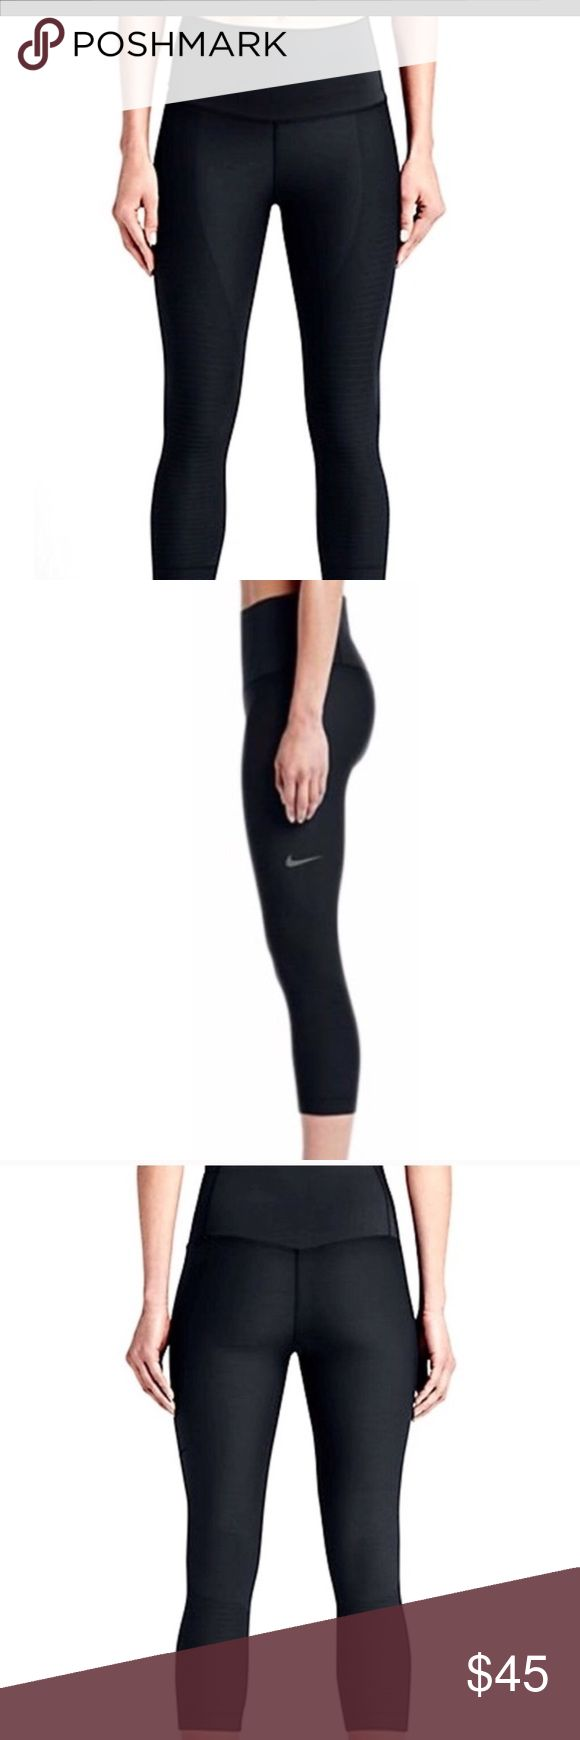 Nike Zoned Sculpt Capris in Black High rise Skinny fit through hips and thighs Skinny cropped leg Pull-on styling Knit-in compression zones for muscle support. Made of 88% nylon and 12% spandex. Size medium. Gently worn in excellent preowned condition. No signs of wear. 😍 Nike Pants Leggings